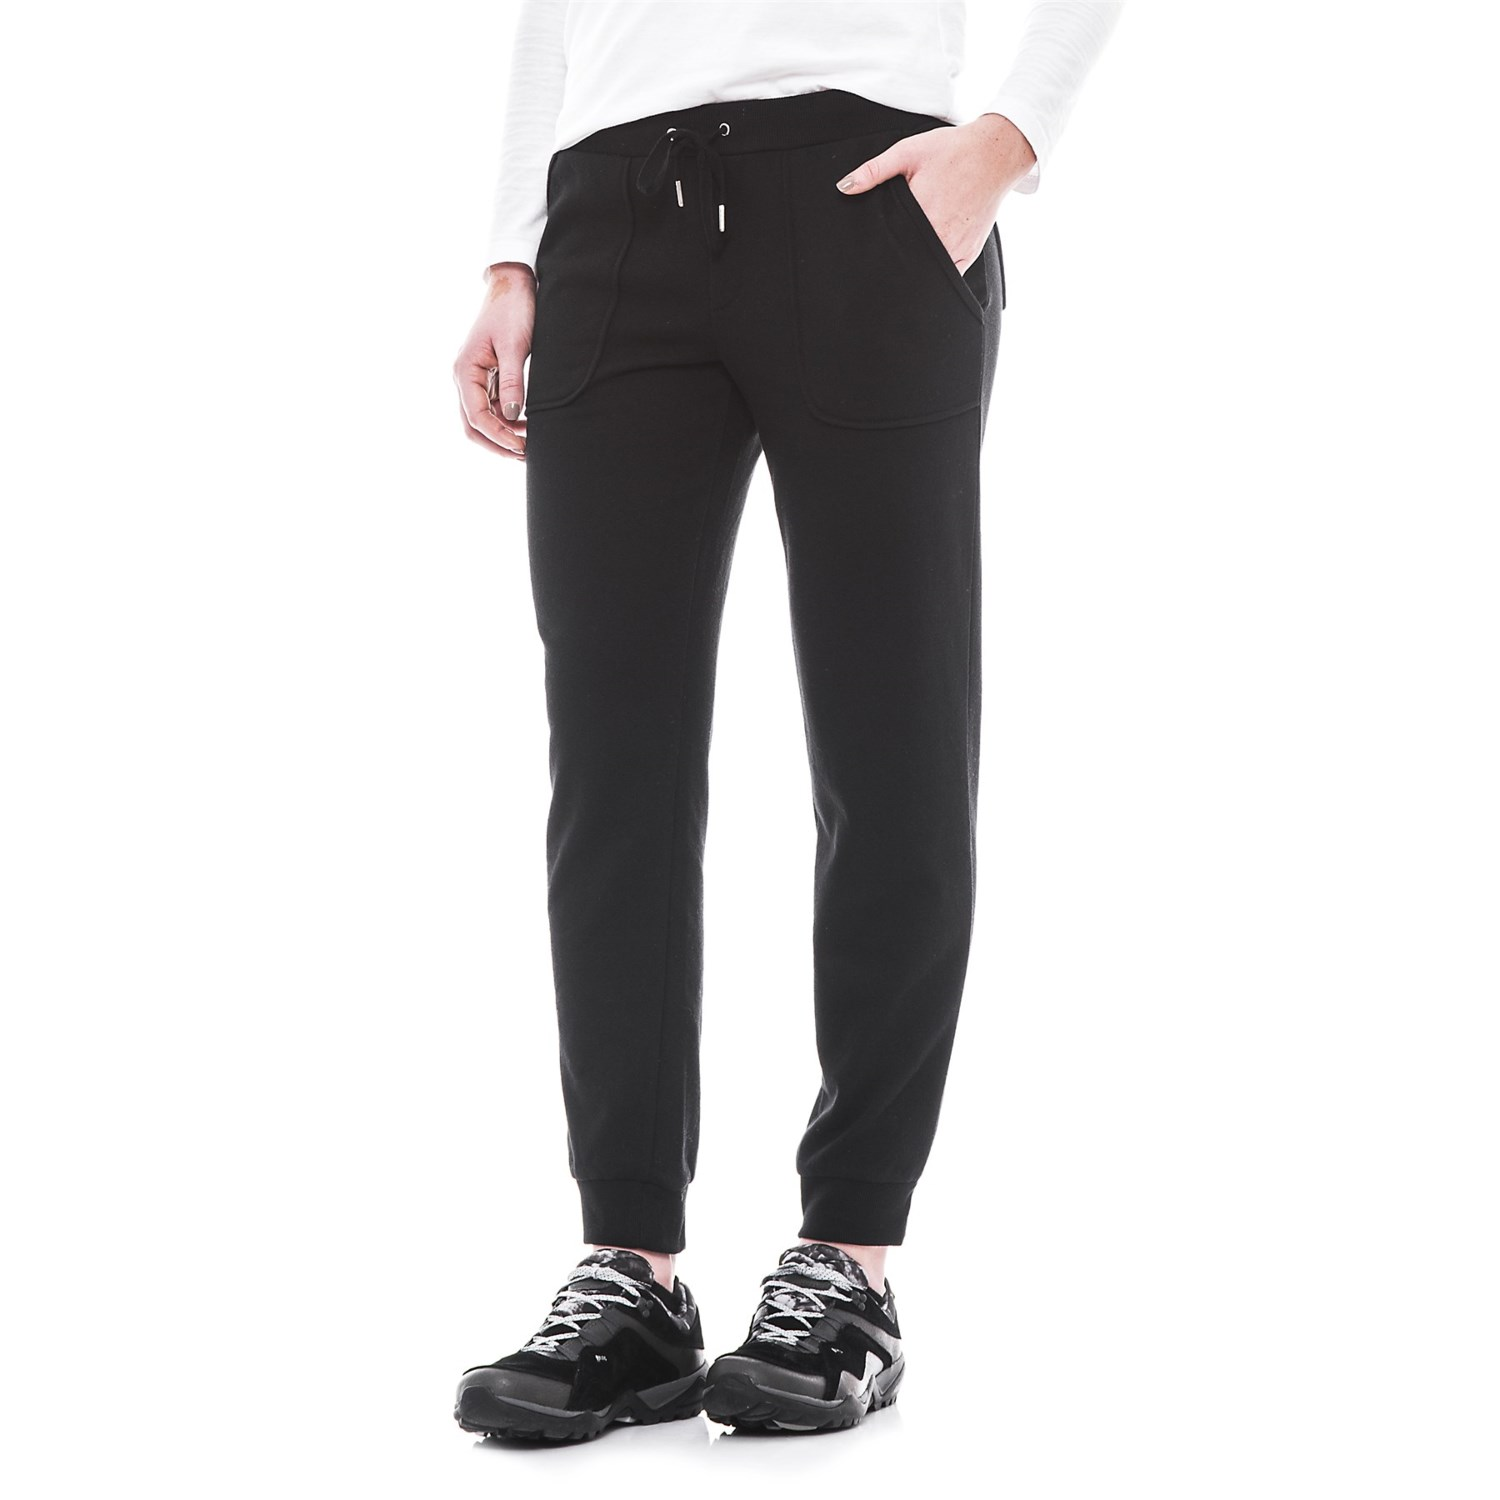 CG Cable & Gauge Knit Joggers (For Women) - Save 71%